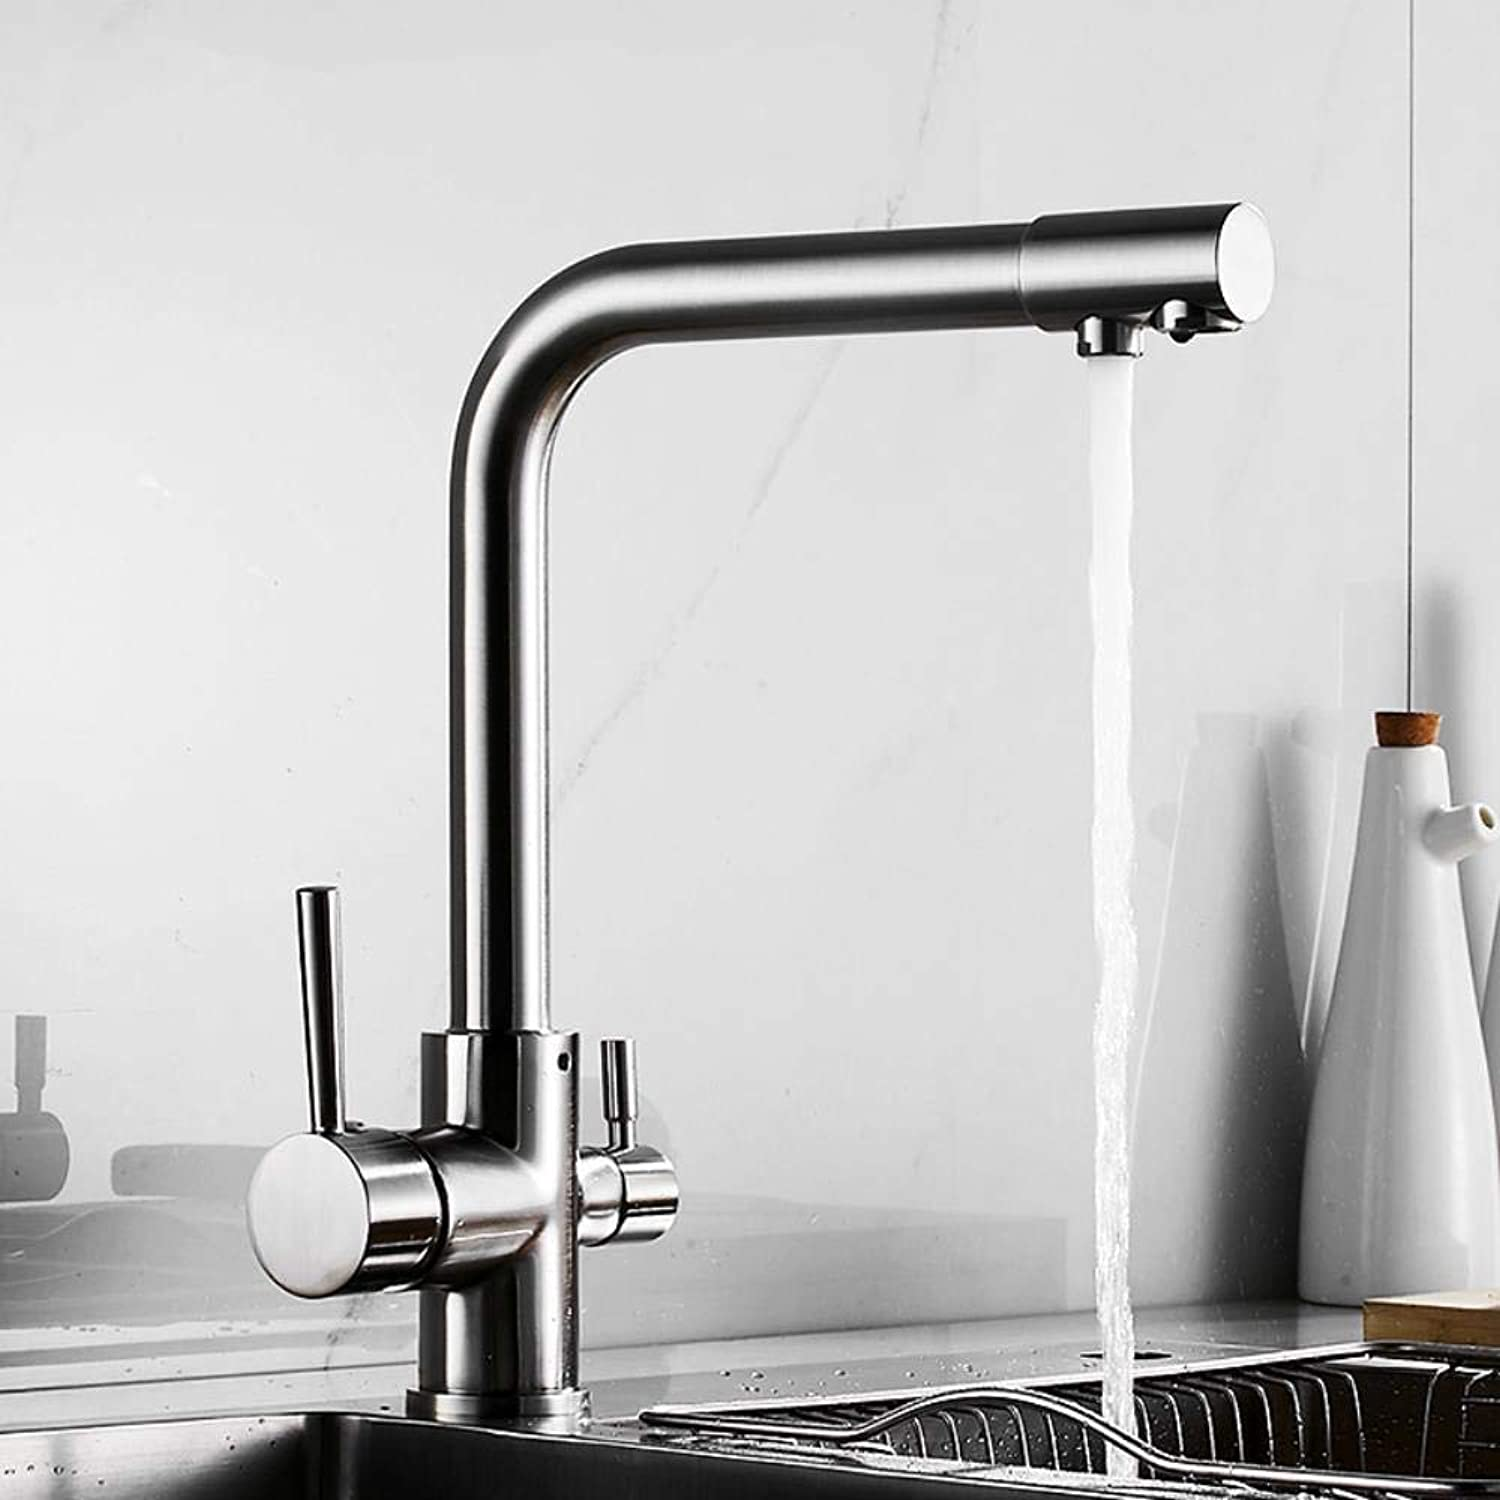 Qiongxi kitchen faucet hot and cold water mixing chrome brushed faucet gold, gold A